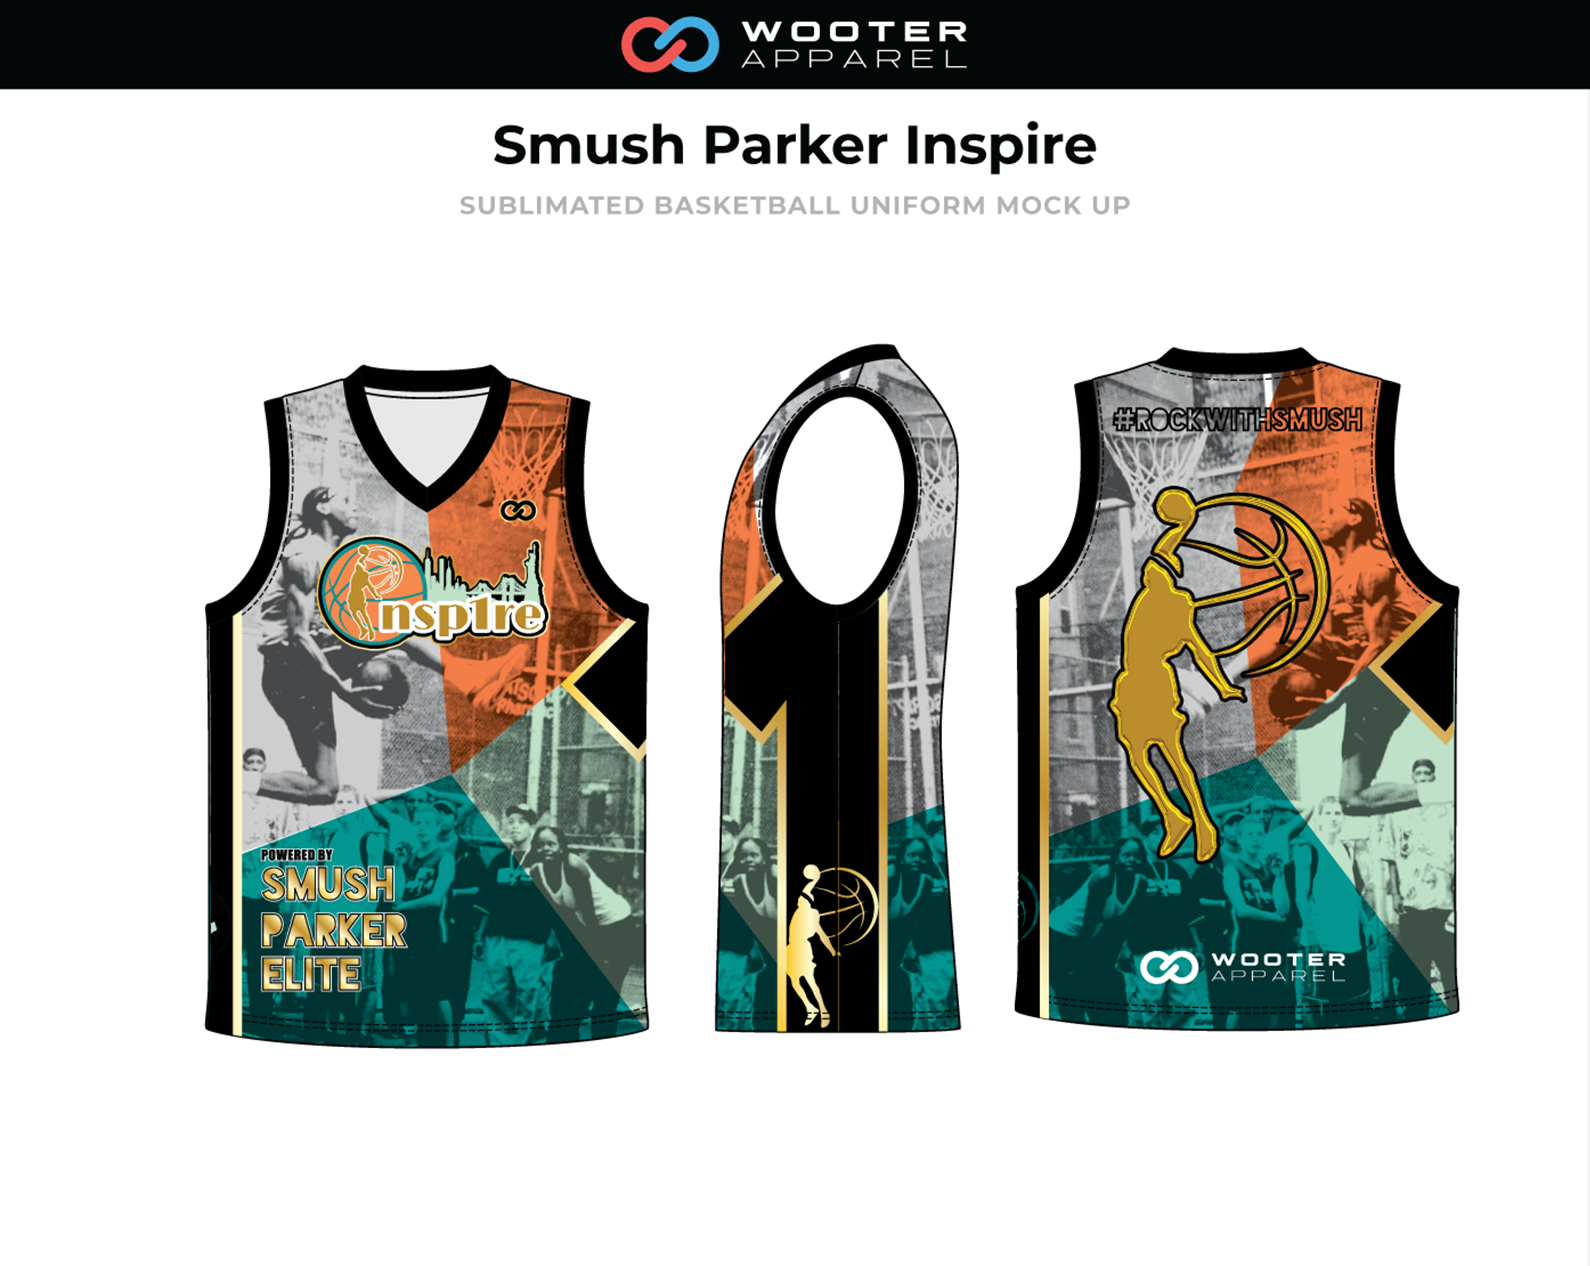 Smush_Parker_Inspire_Sublimated_Basketball_Jersey_12-11-2018.png